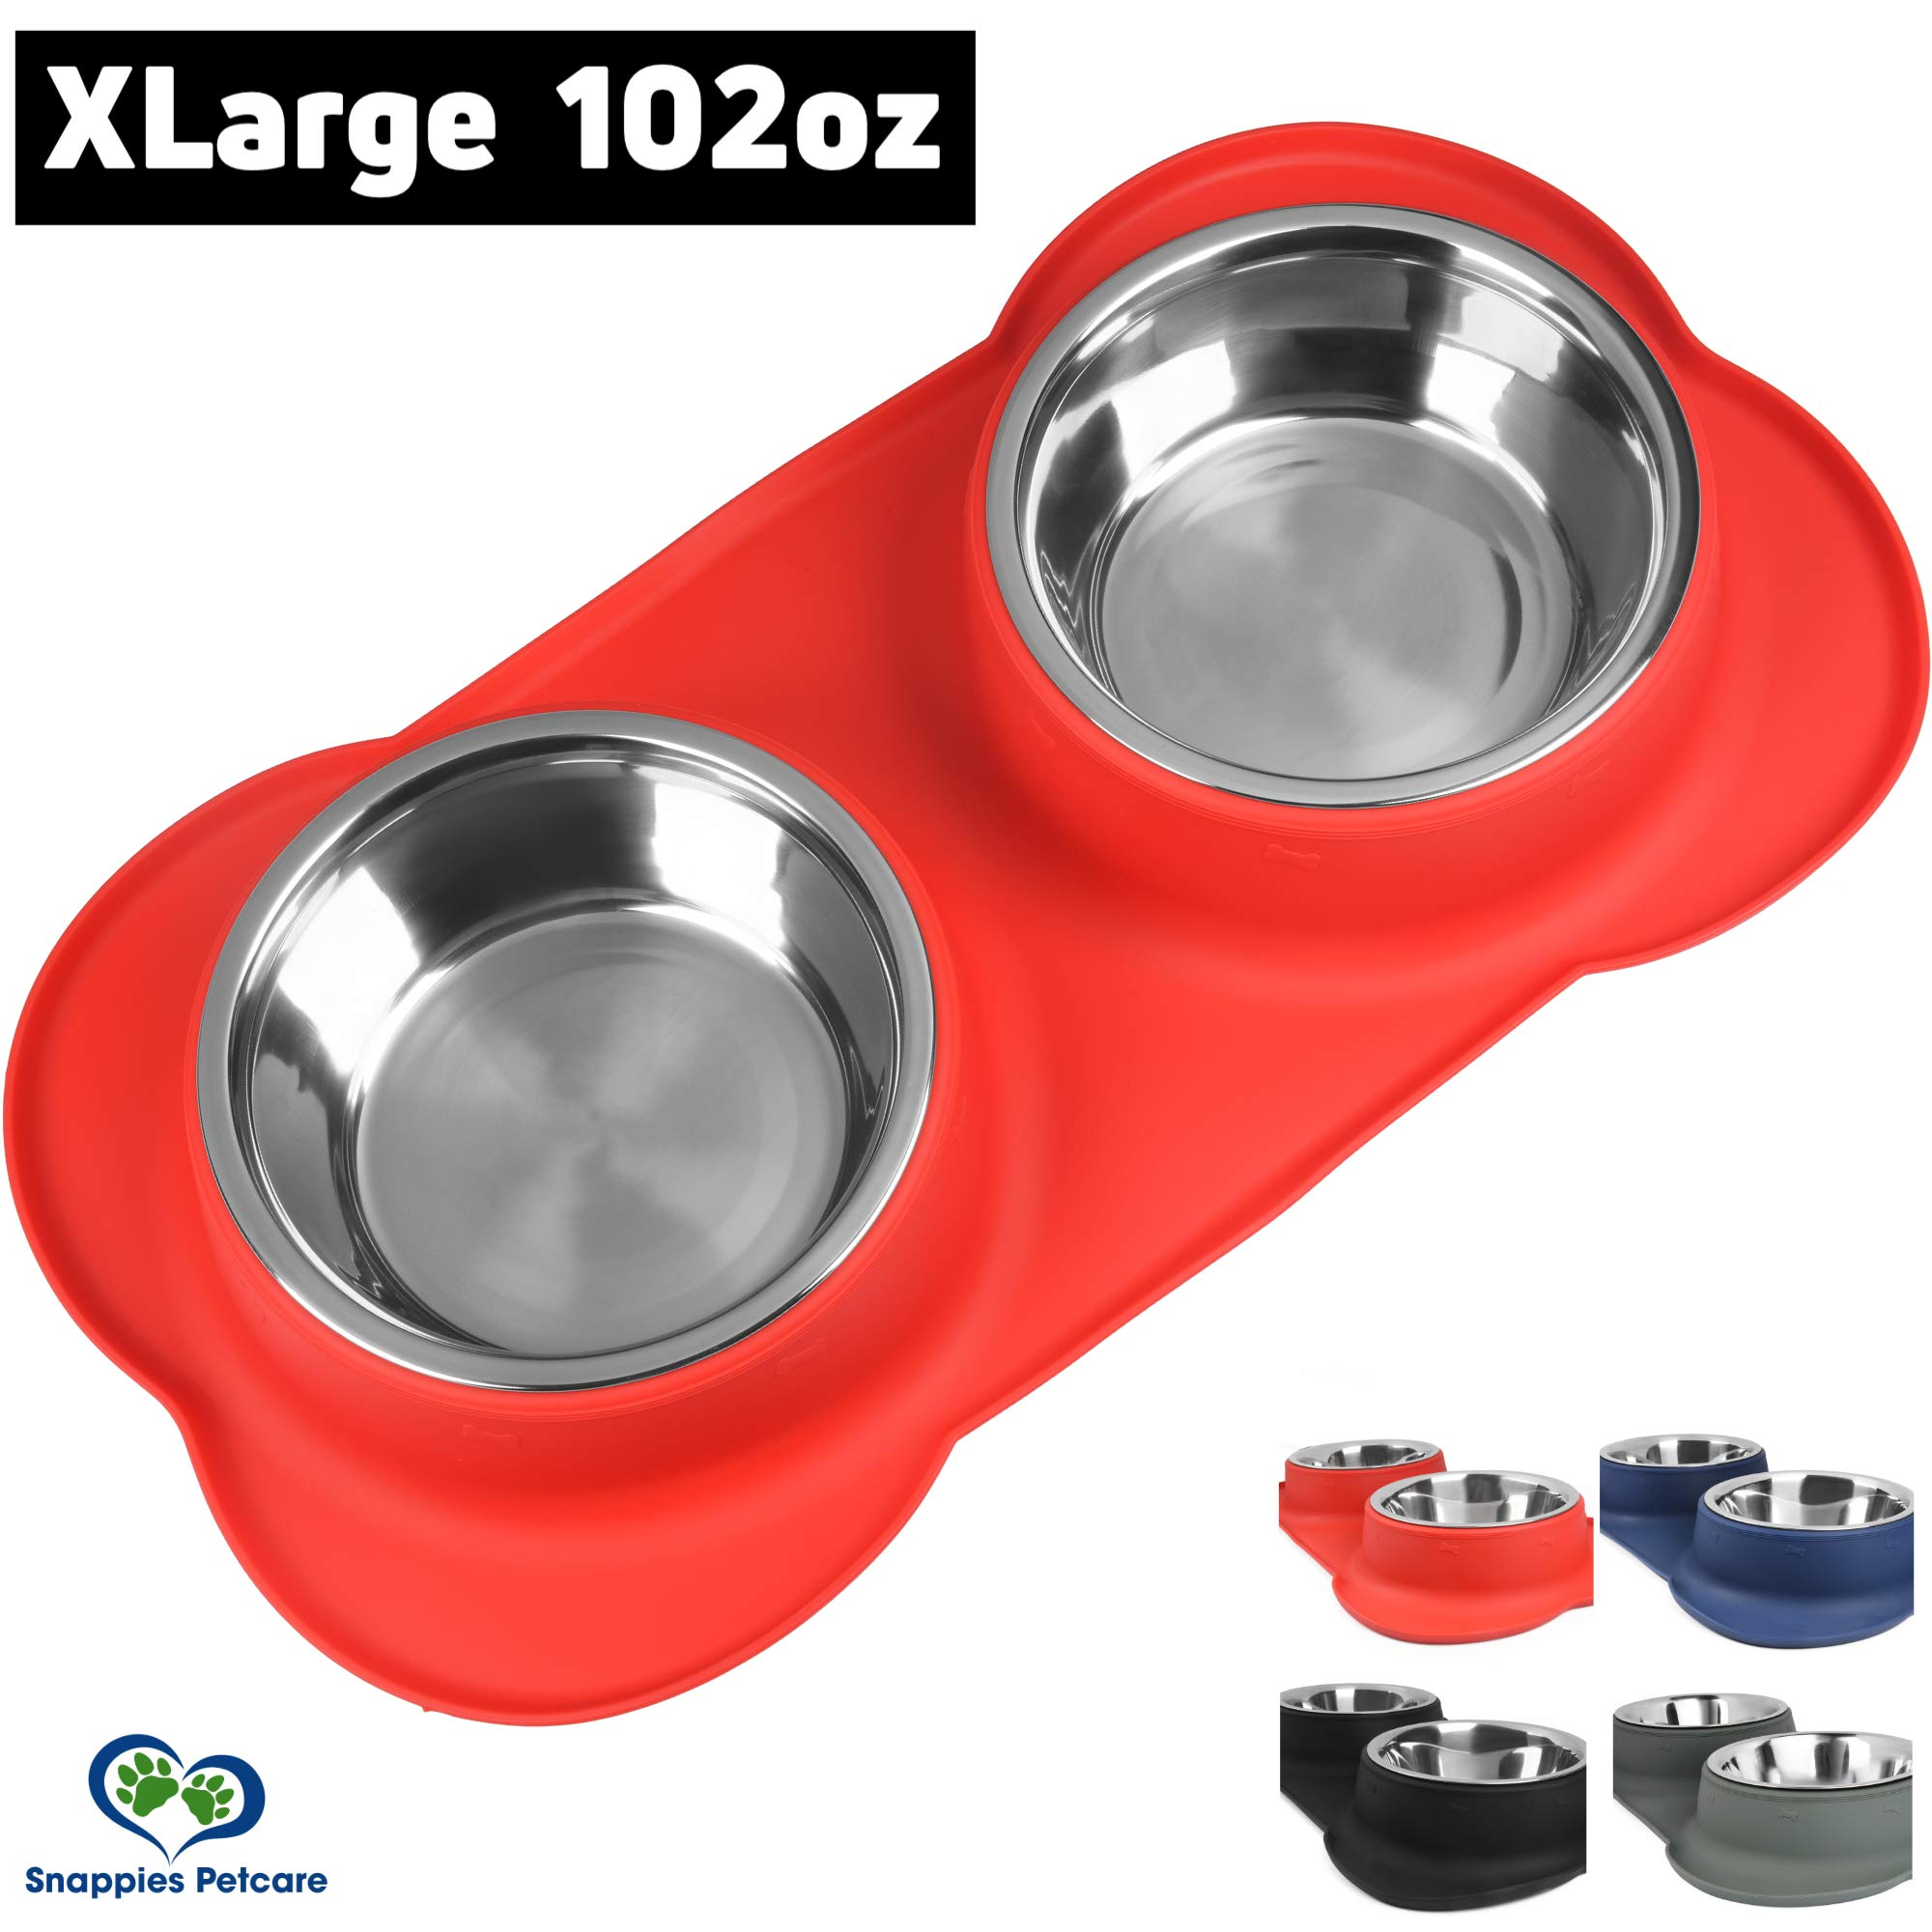 Large Dog Bowl - 2 Large Capacity 51oz (102oz Total) Removable Stainless Steel Bowls Set in a Stylish No Mess, No Spill, Non Skid, Silicone Mat. Food & Water Bowl for Medium to Large Dogs (Red)